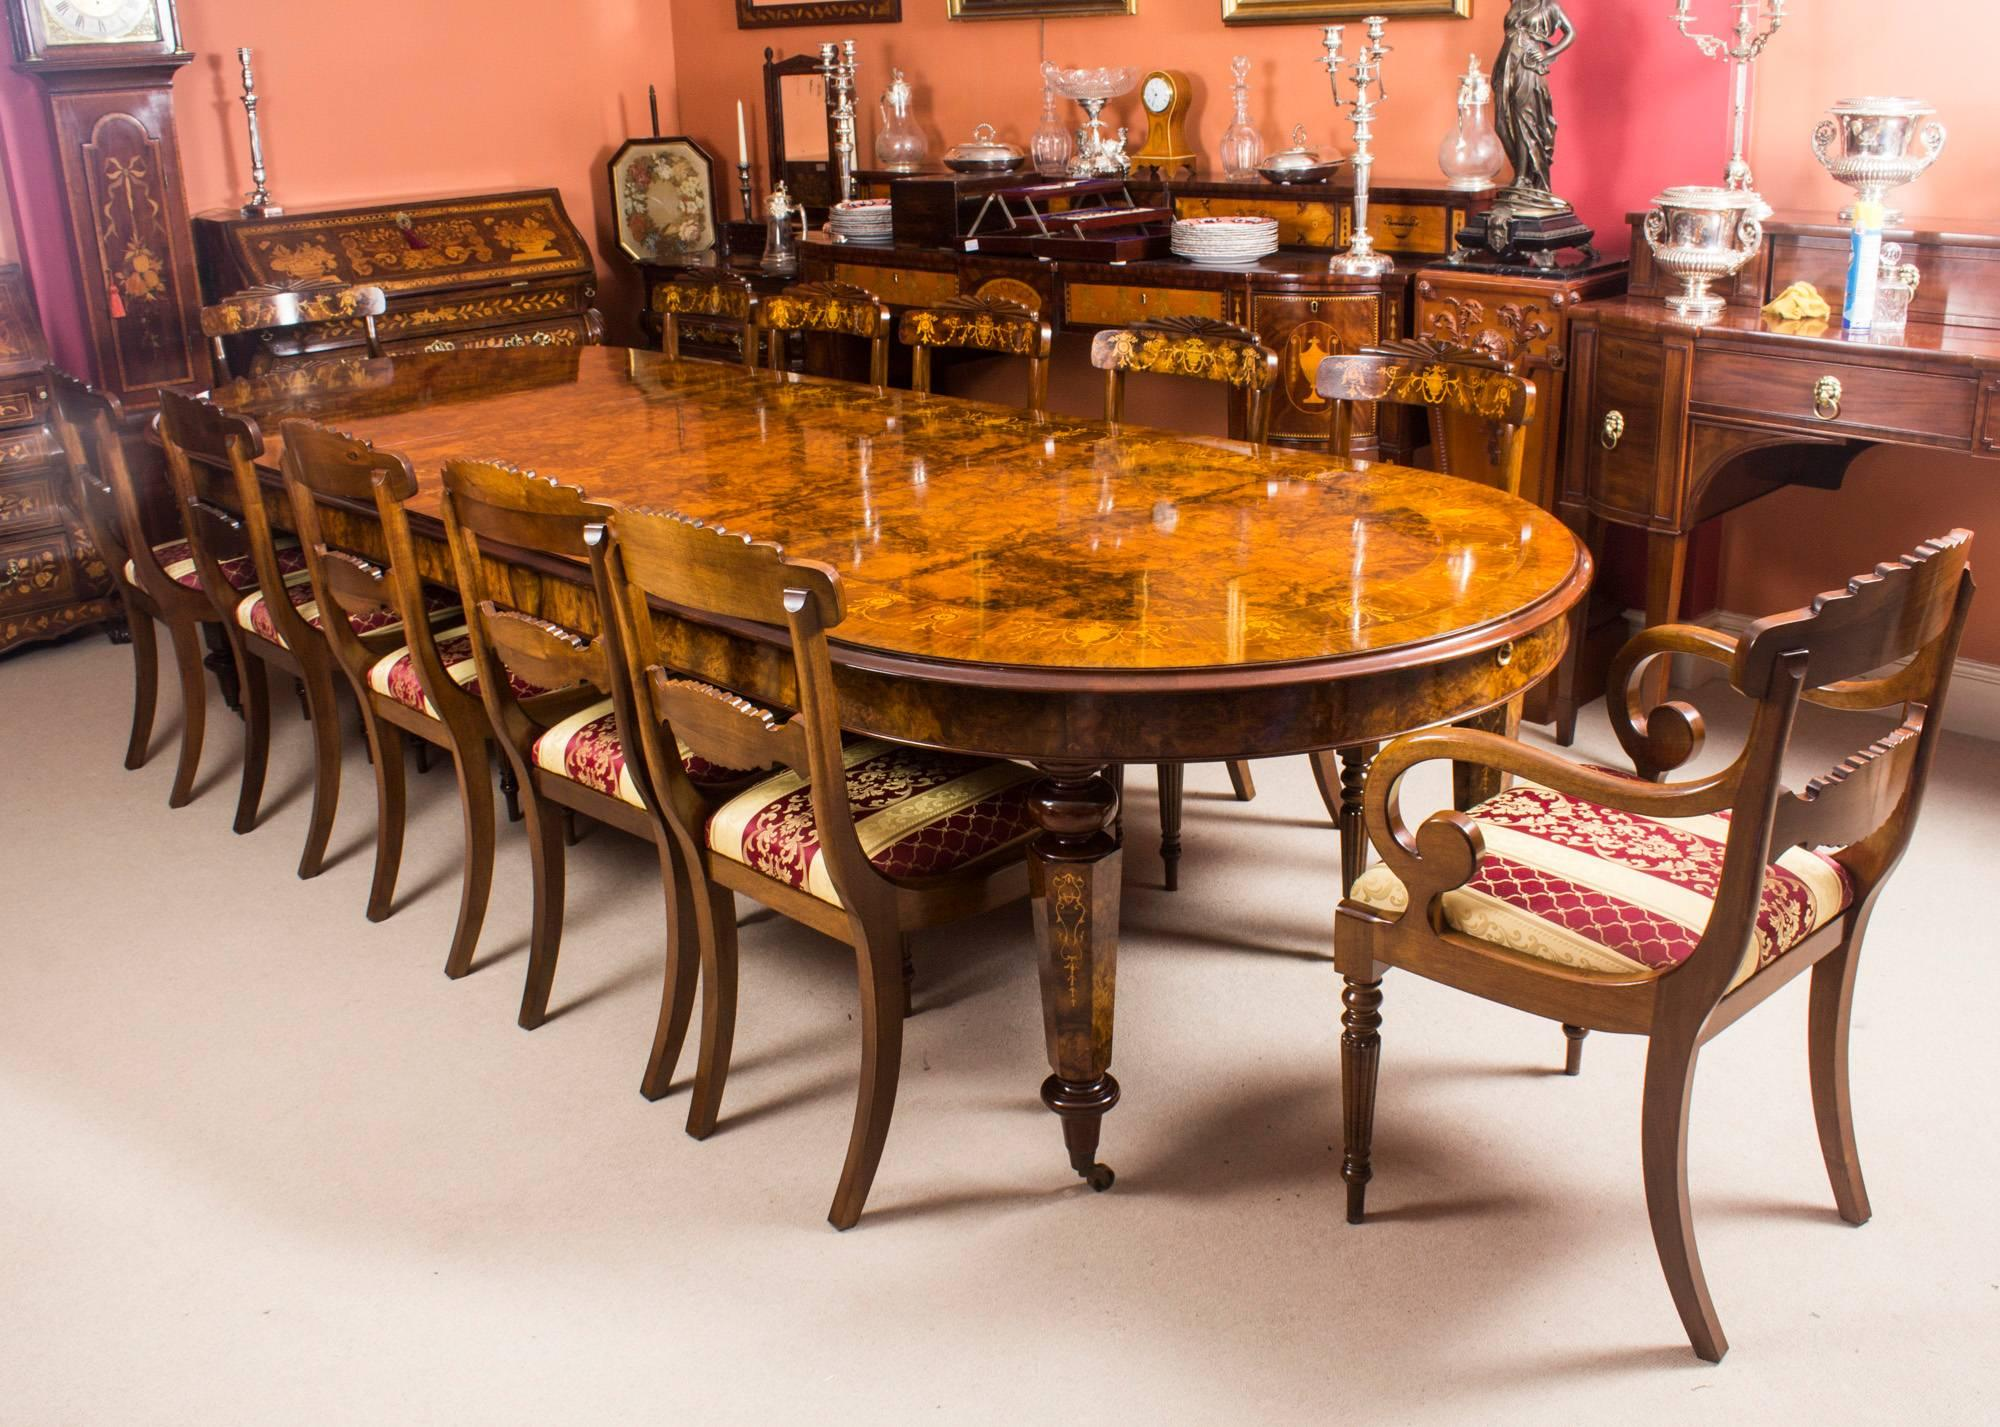 Amazing Bespoke Handmade Victorian Style Burr Walnut Marquetry Dining Table At 1stdibs